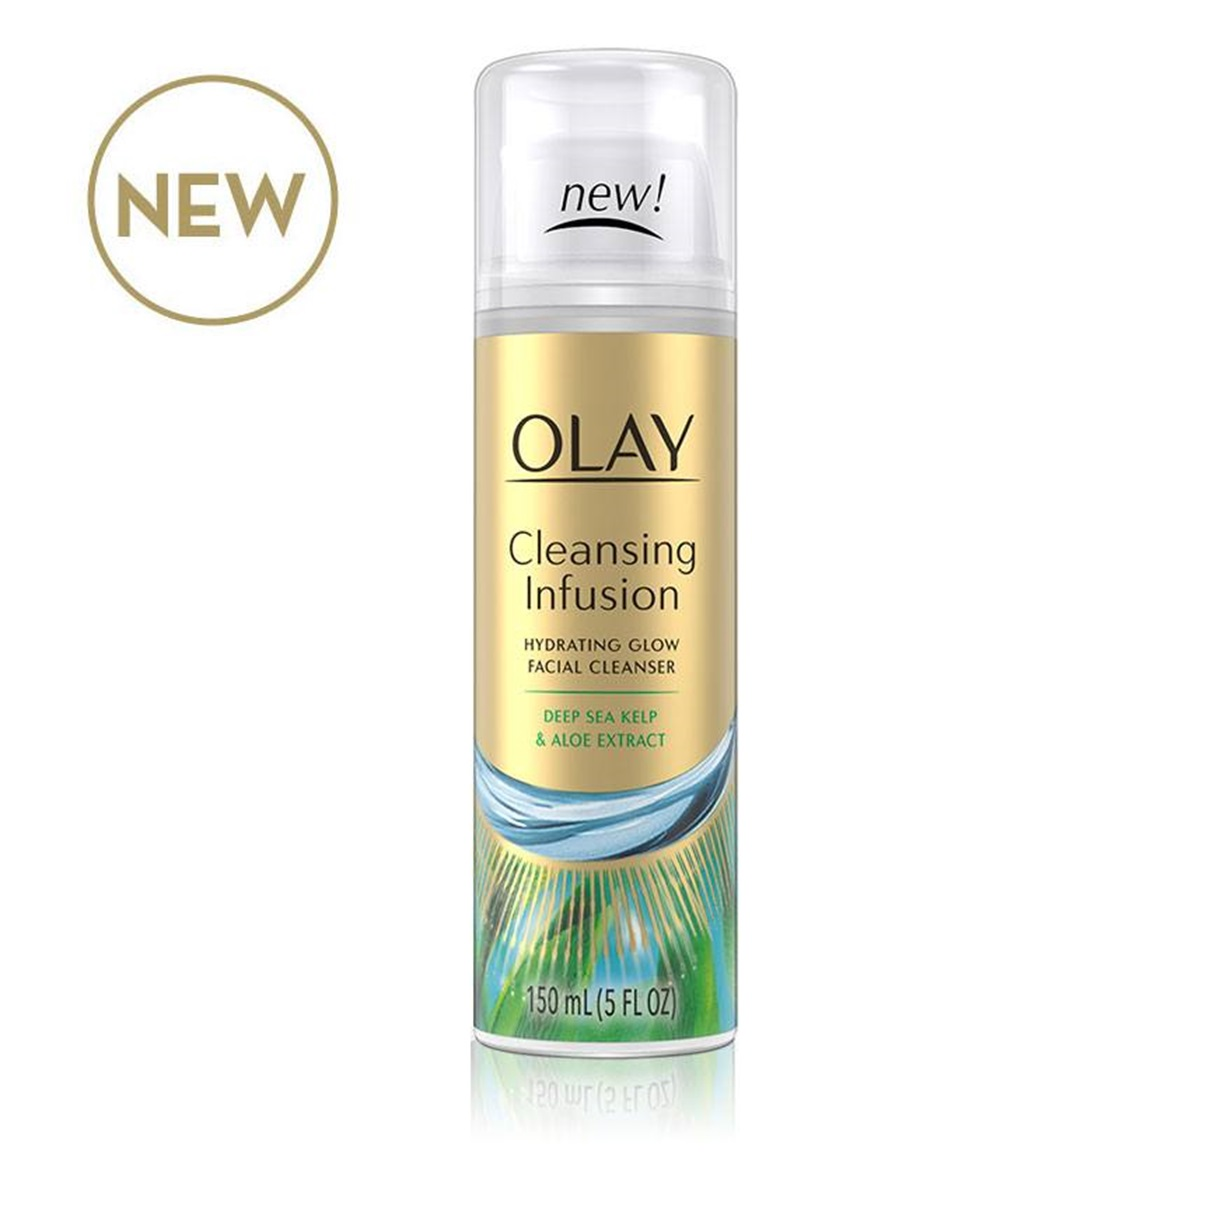 Review Olay Cleansing Infusion Hydrating Glow Facial Cleanser Biore Oil 150ml Free In Sheet 2s Sample There Is A New Town And It Good One This Foaming Mousse Leaves Face Cleaner Than Ever Before With Its Unique Way Of Drawing Out